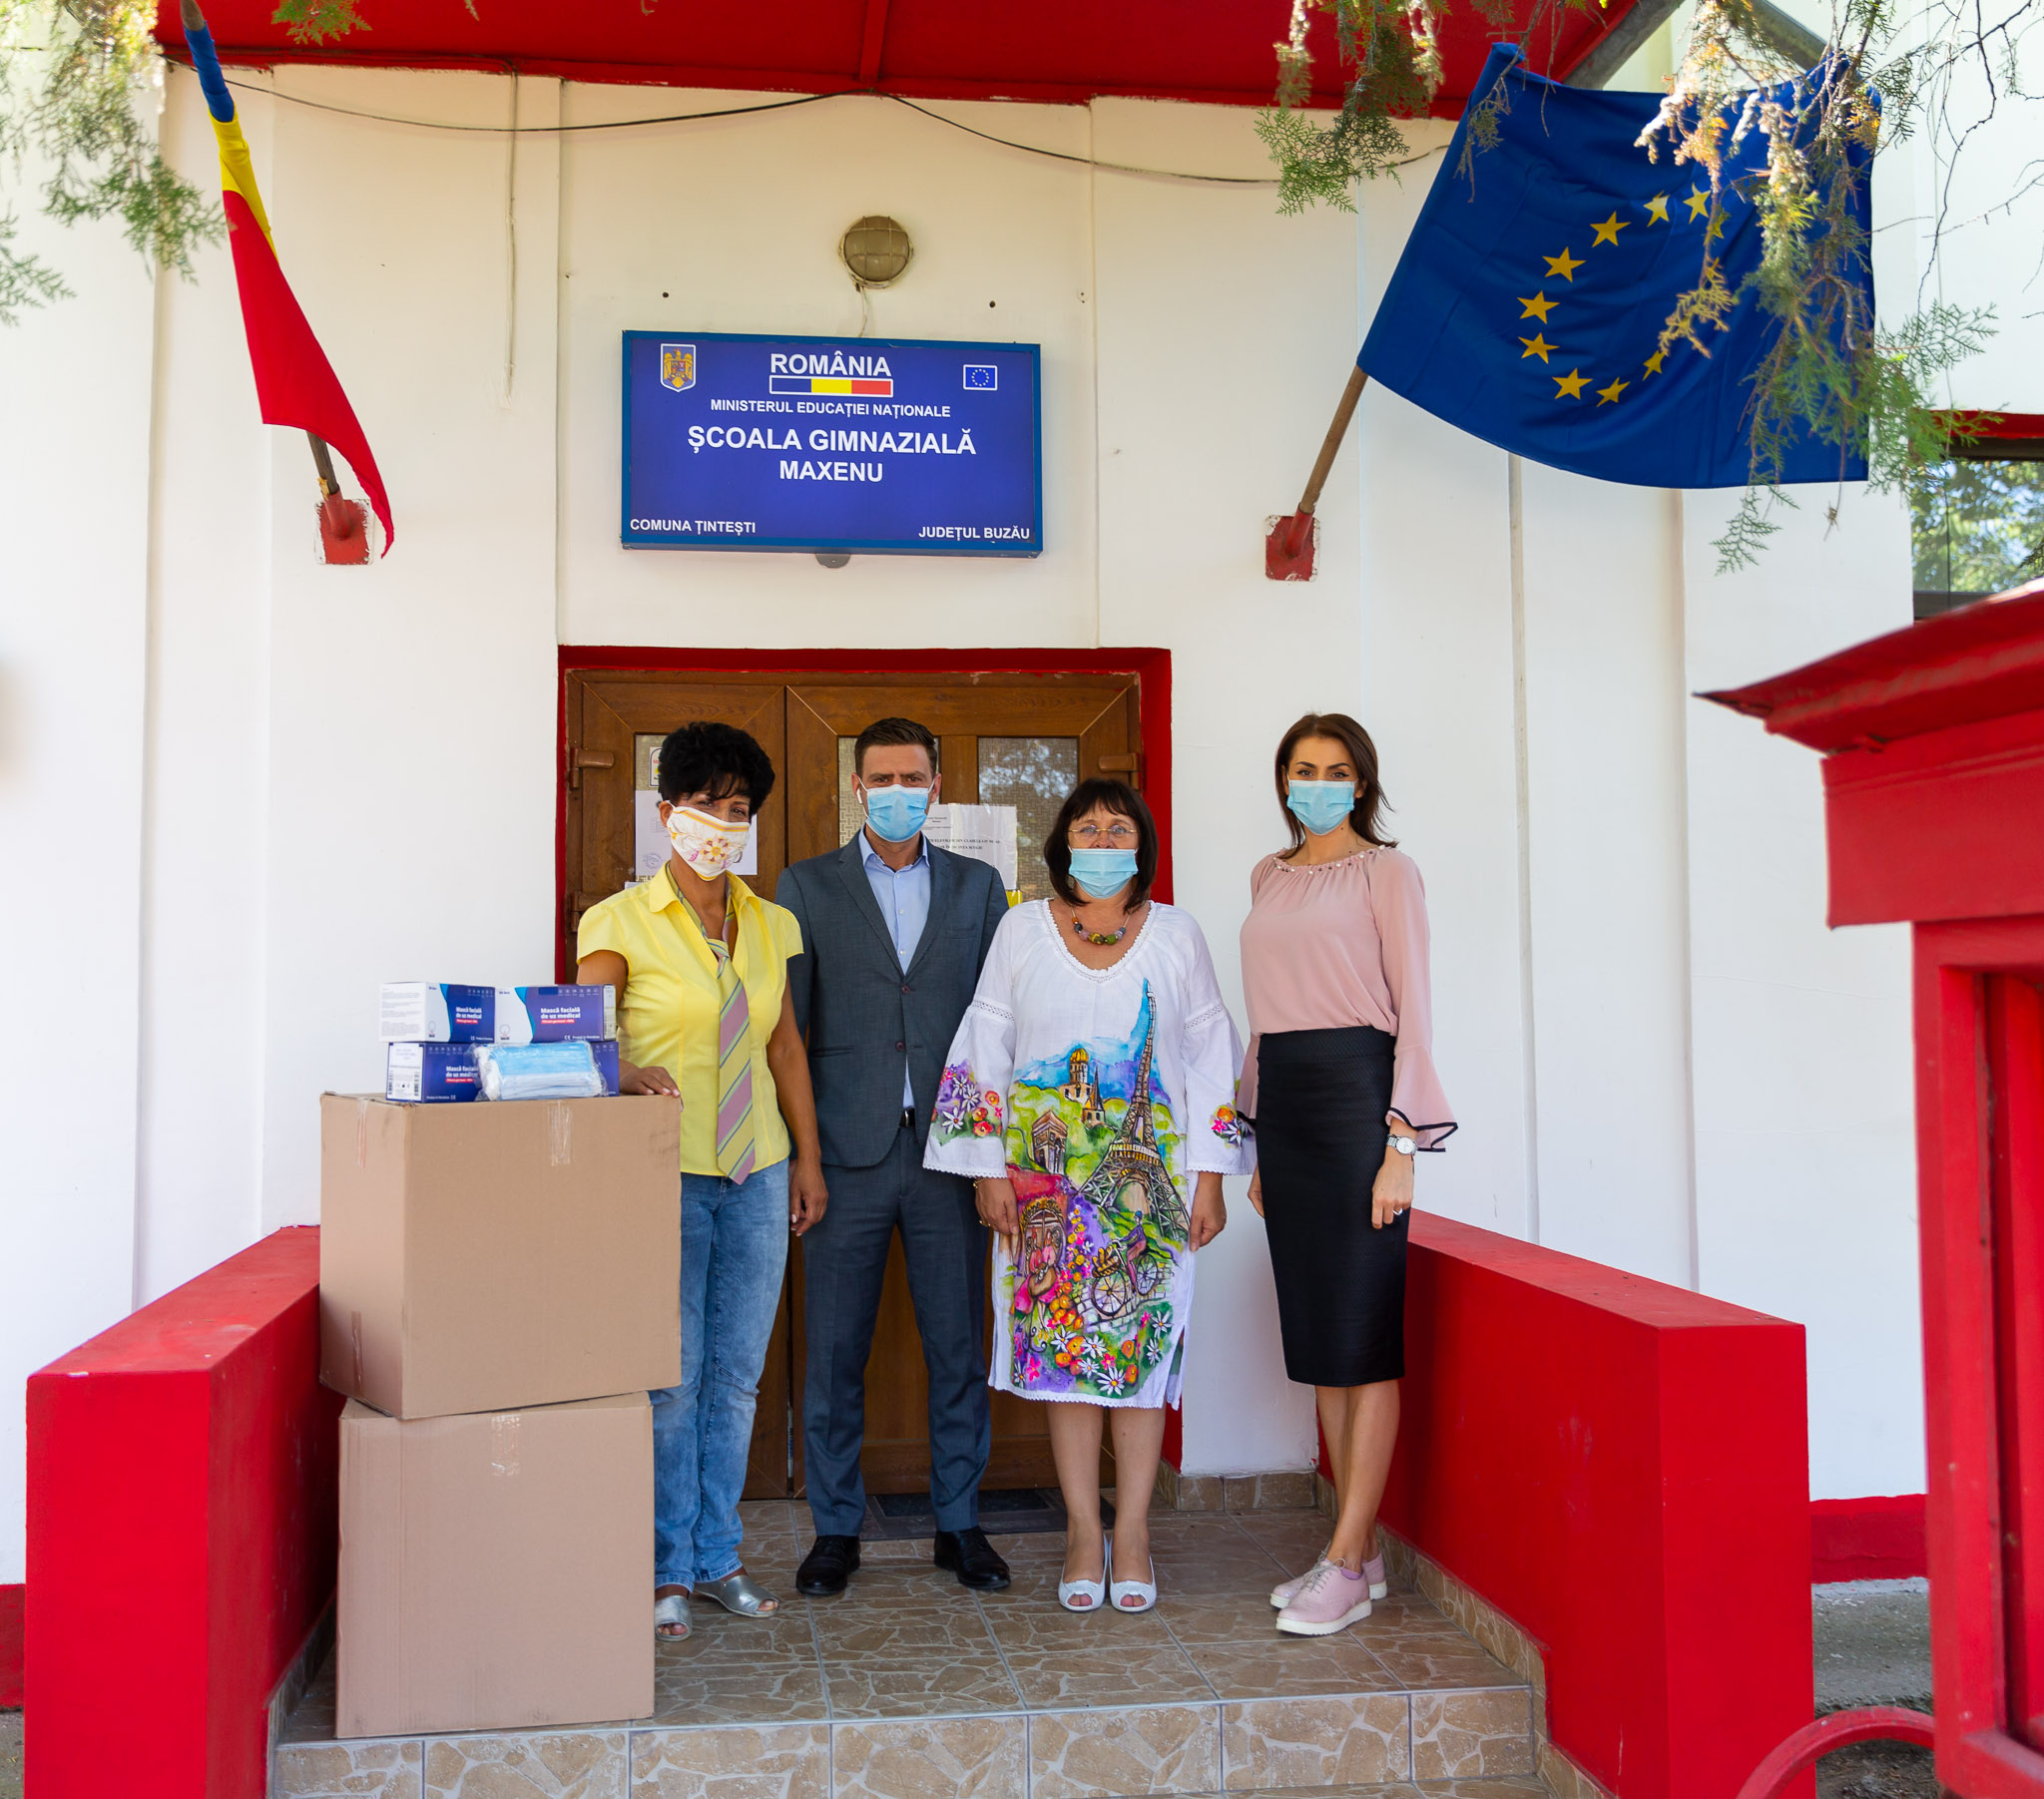 Green Group donates 30,000 protection masks to pupils enrolled in Maxenu School of Tintesti Township